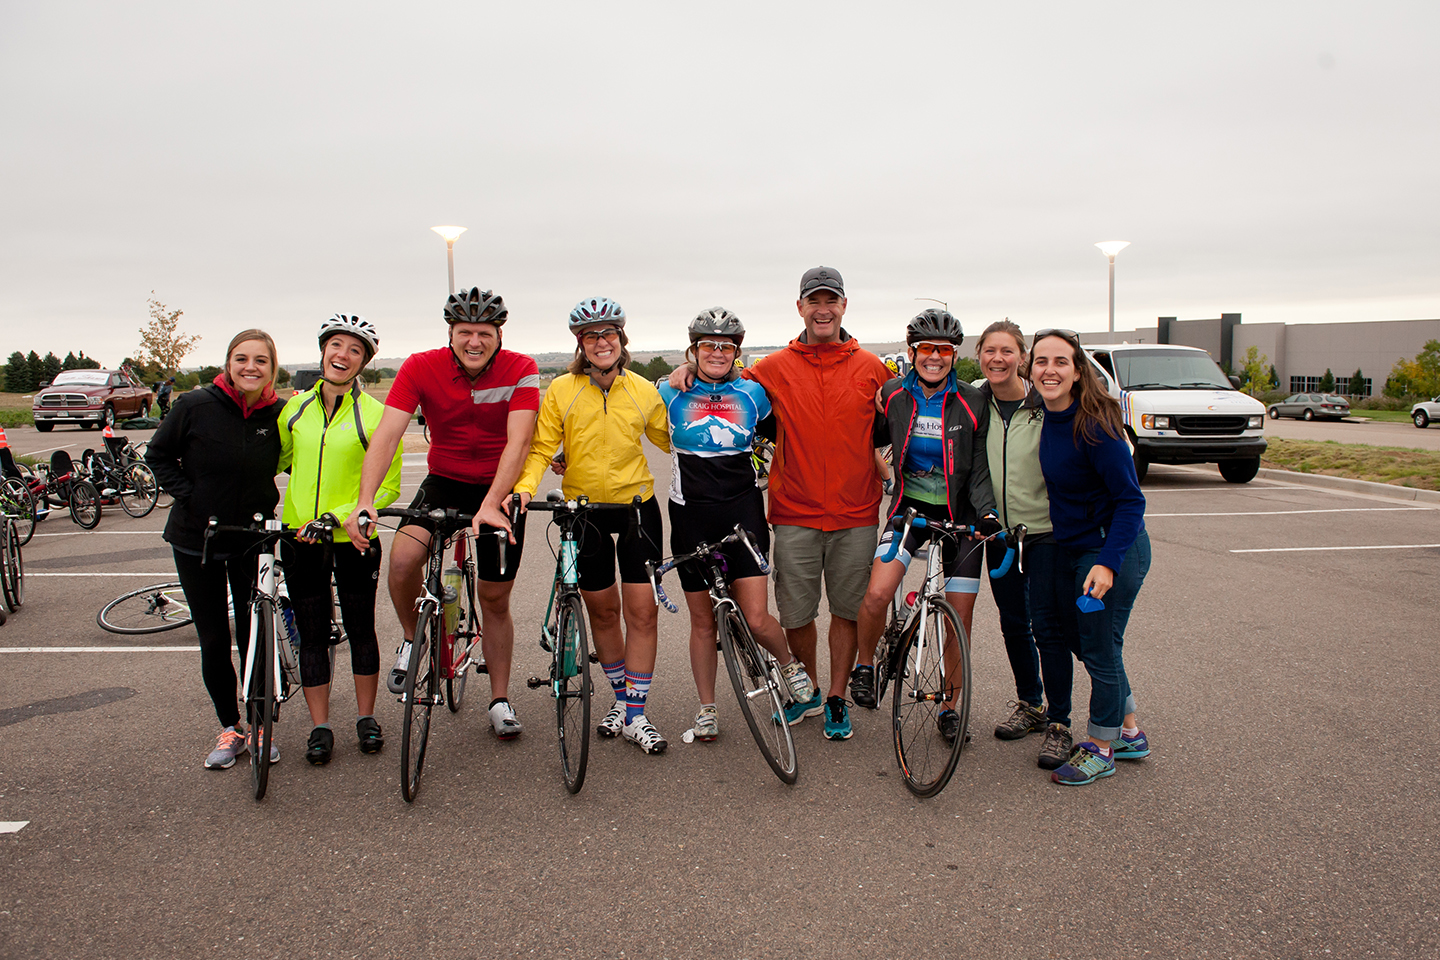 Participants in the 2017 Pedal 4 Possible charity bike ride benefiting Craig Hospital